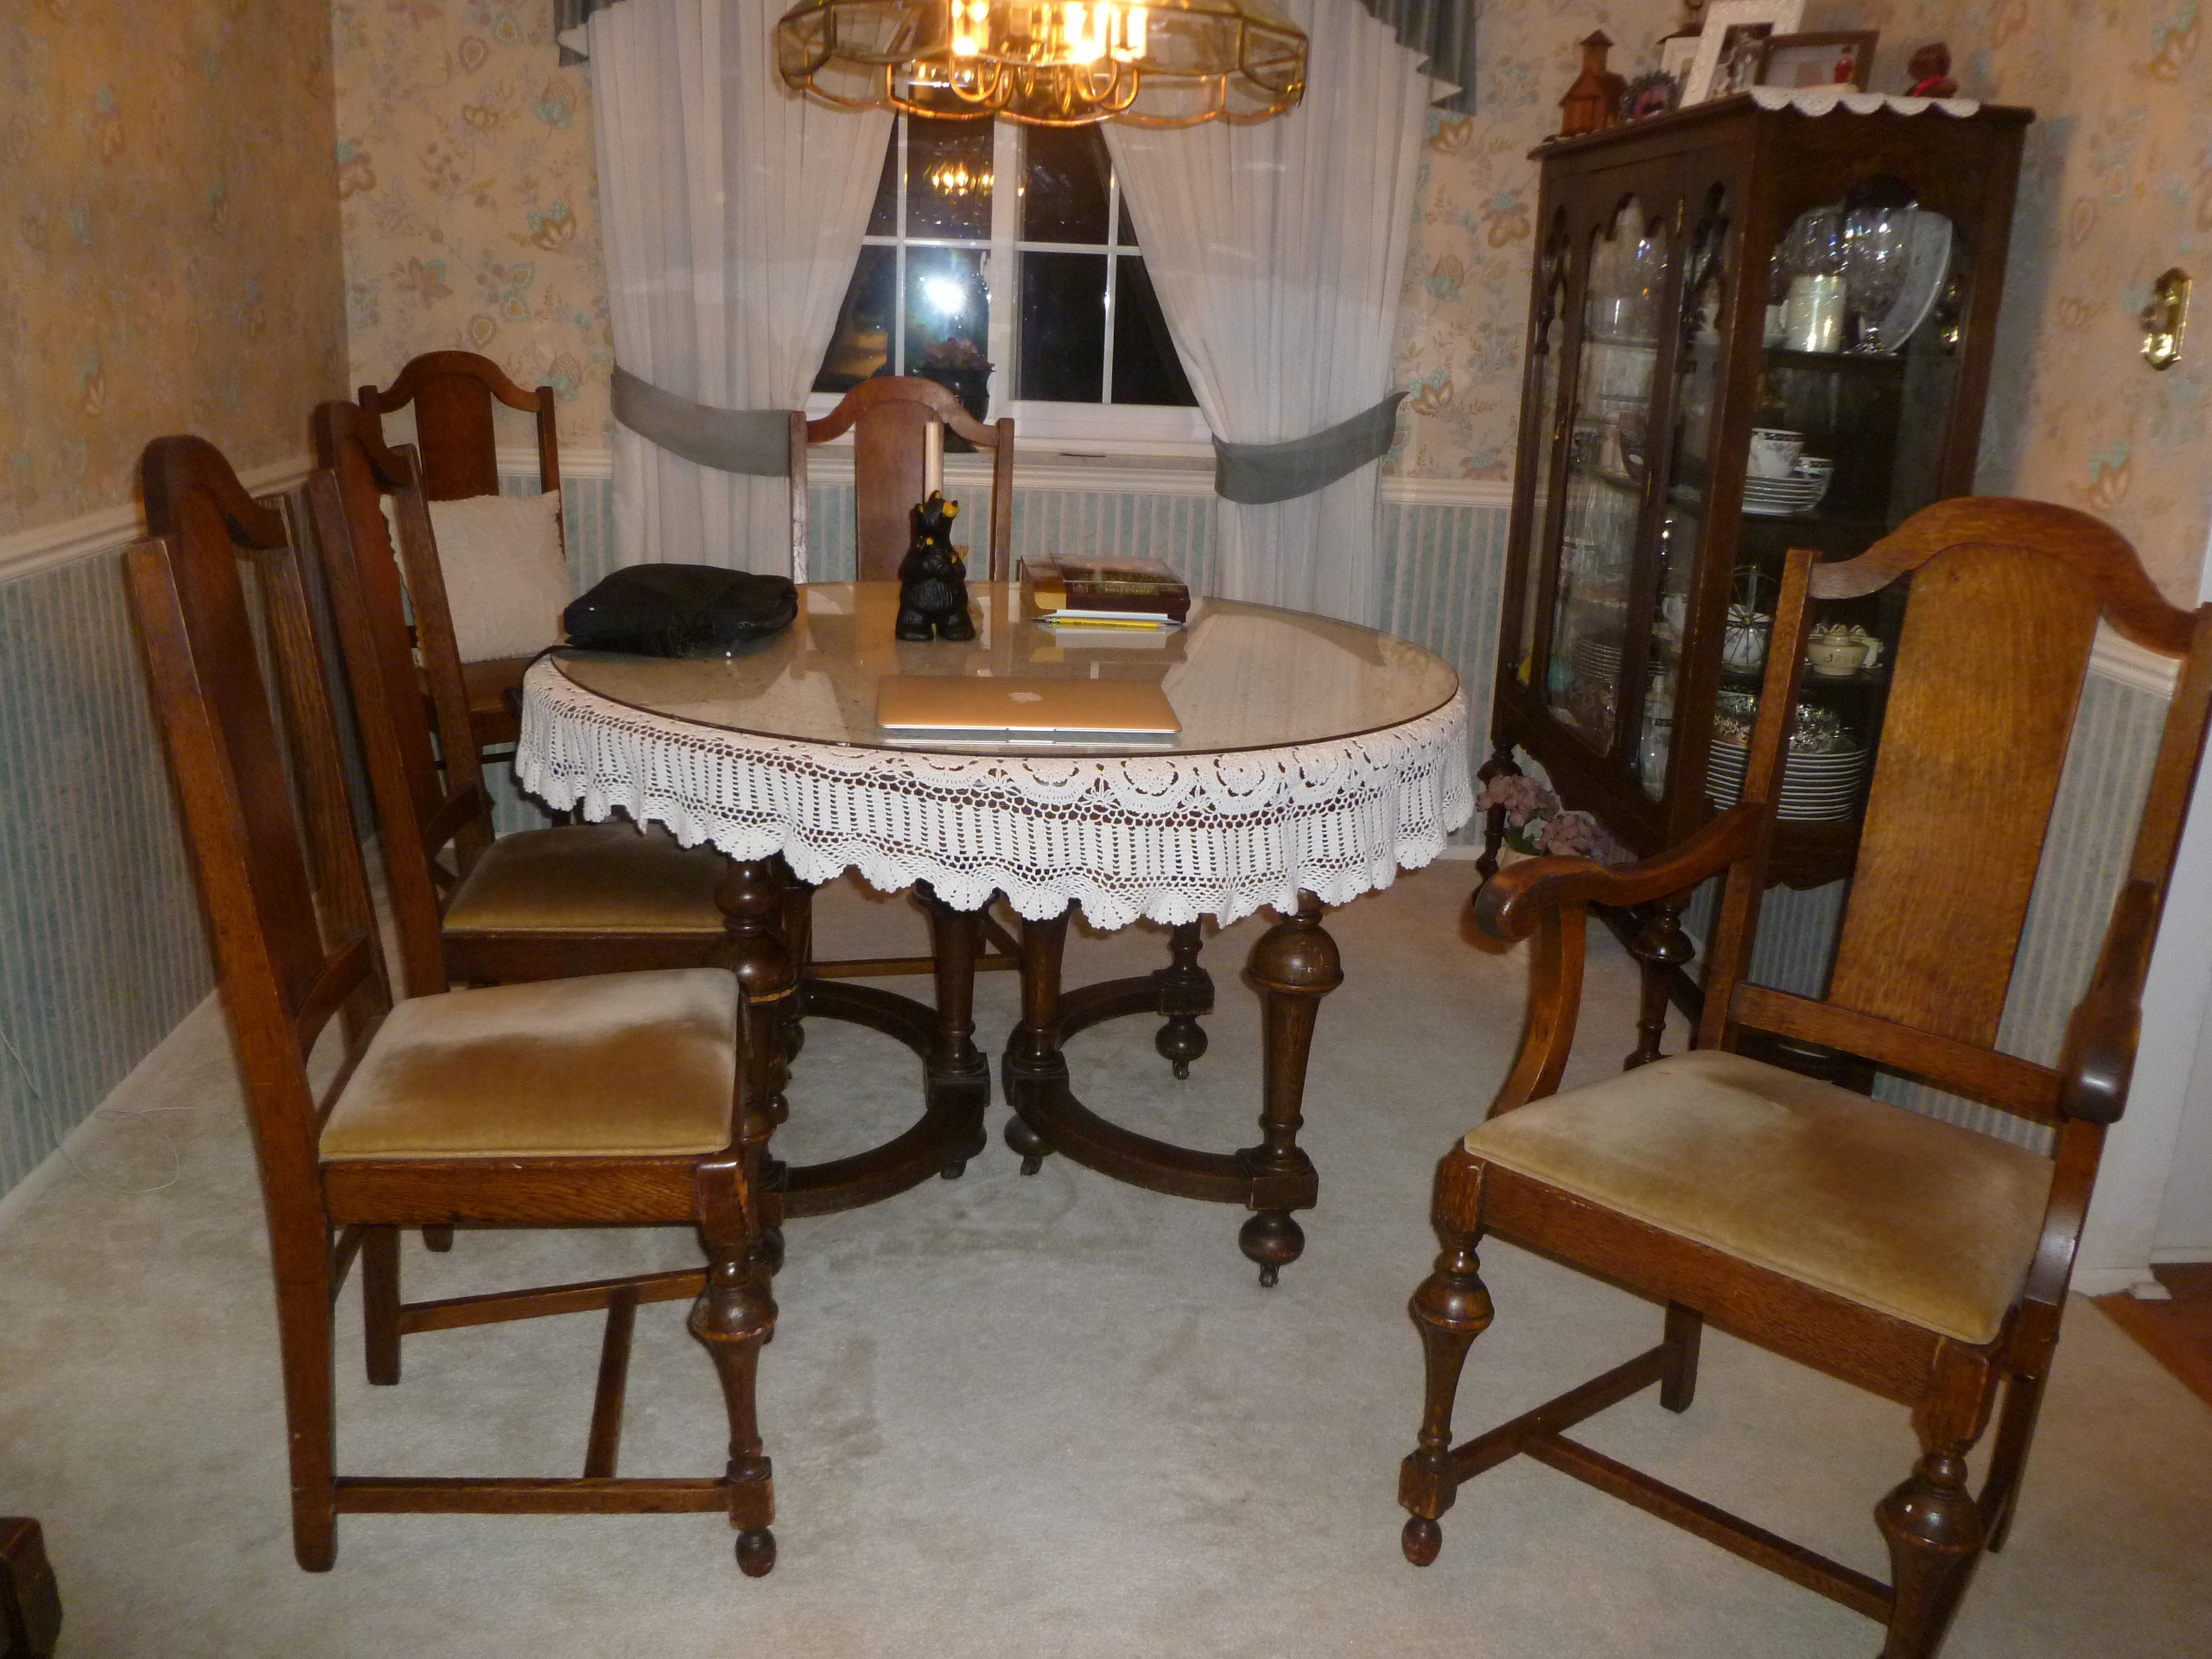 1880s tiger oak round dining set 6 chairs, hutch and china